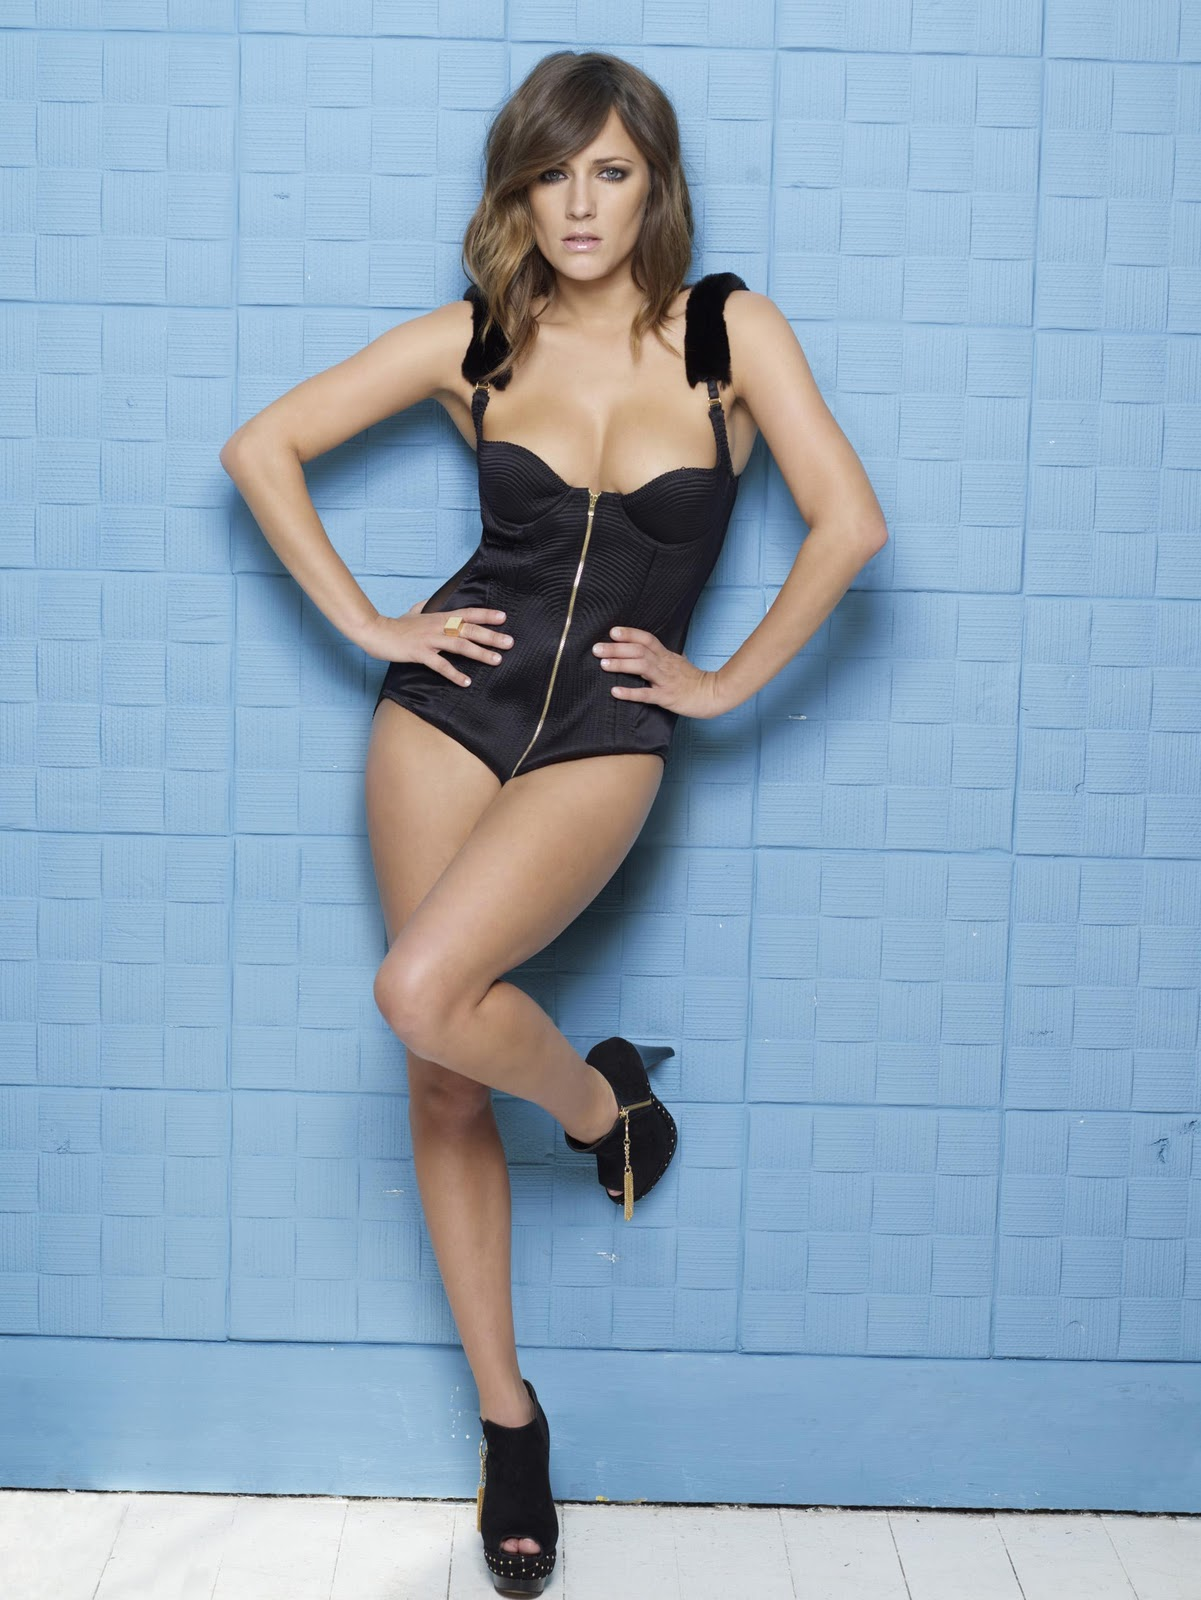 You Caroline flack sexy pics any